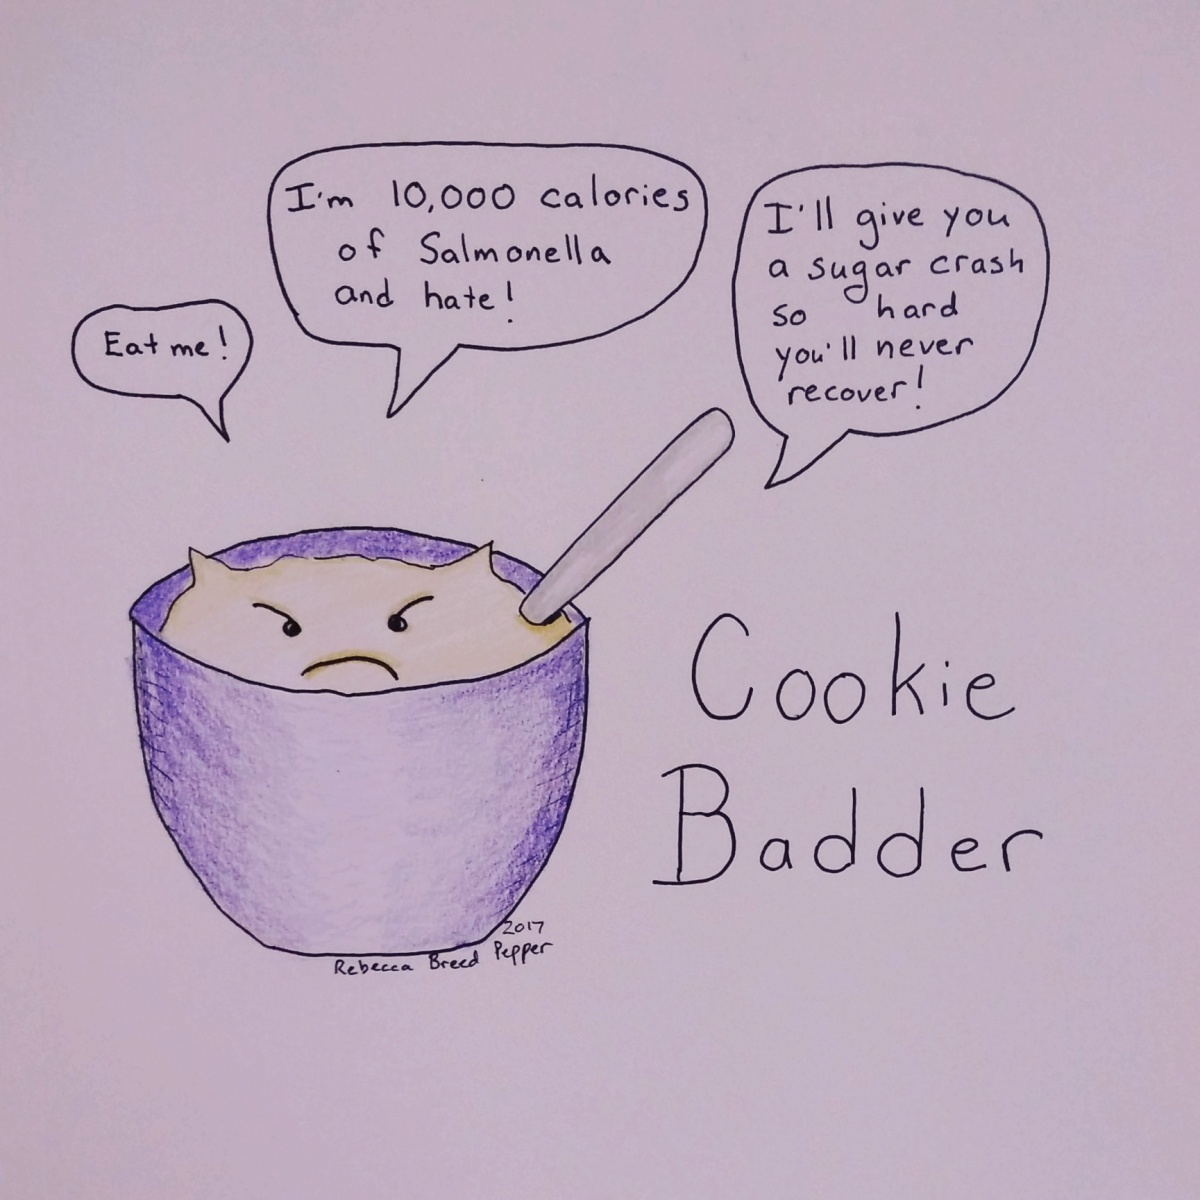 Malapropism #3: Cookie Badder